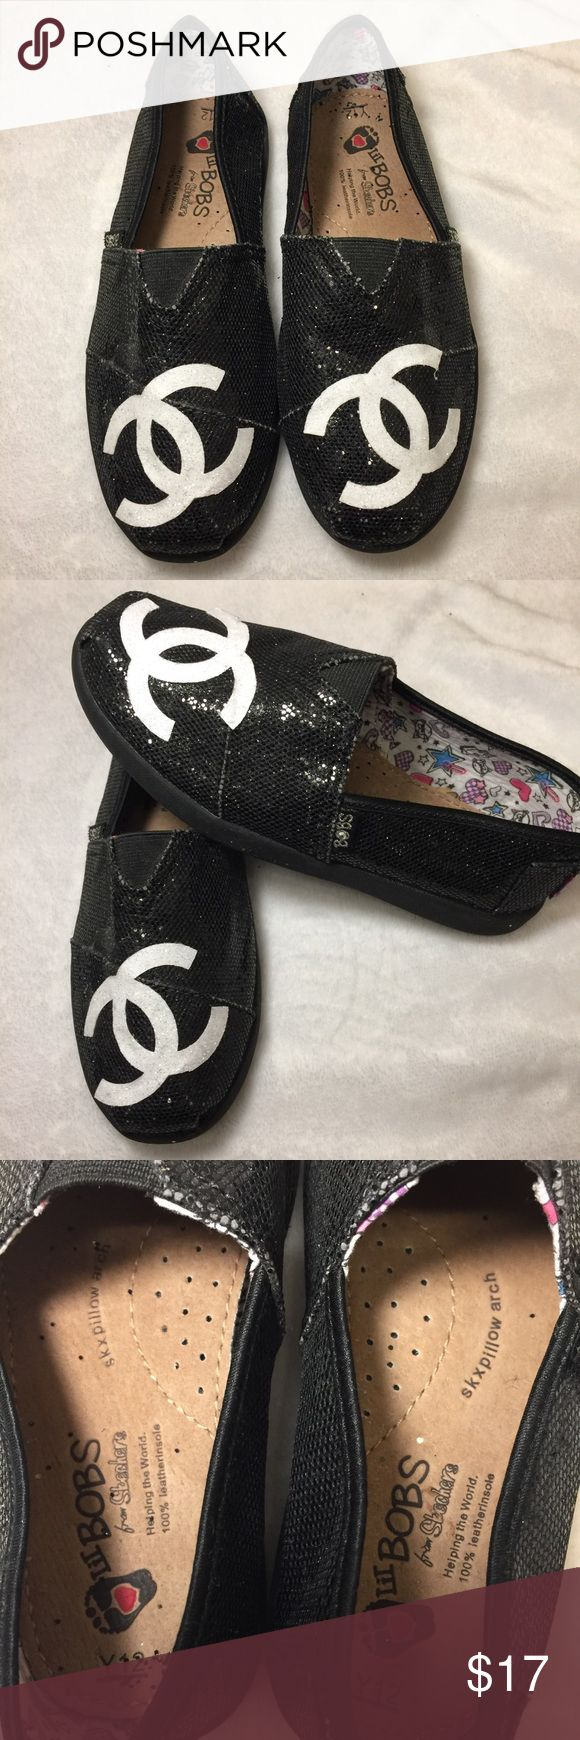 🖤Custom Lil Bobs Stechers🖤 Custom Lil Bobs Skechers. I customs made these into Chanel I just put a Chanel logo on them! Very cute for Little's girls! NEVER WORE just been in clothes! Skechers Shoes Moccasins